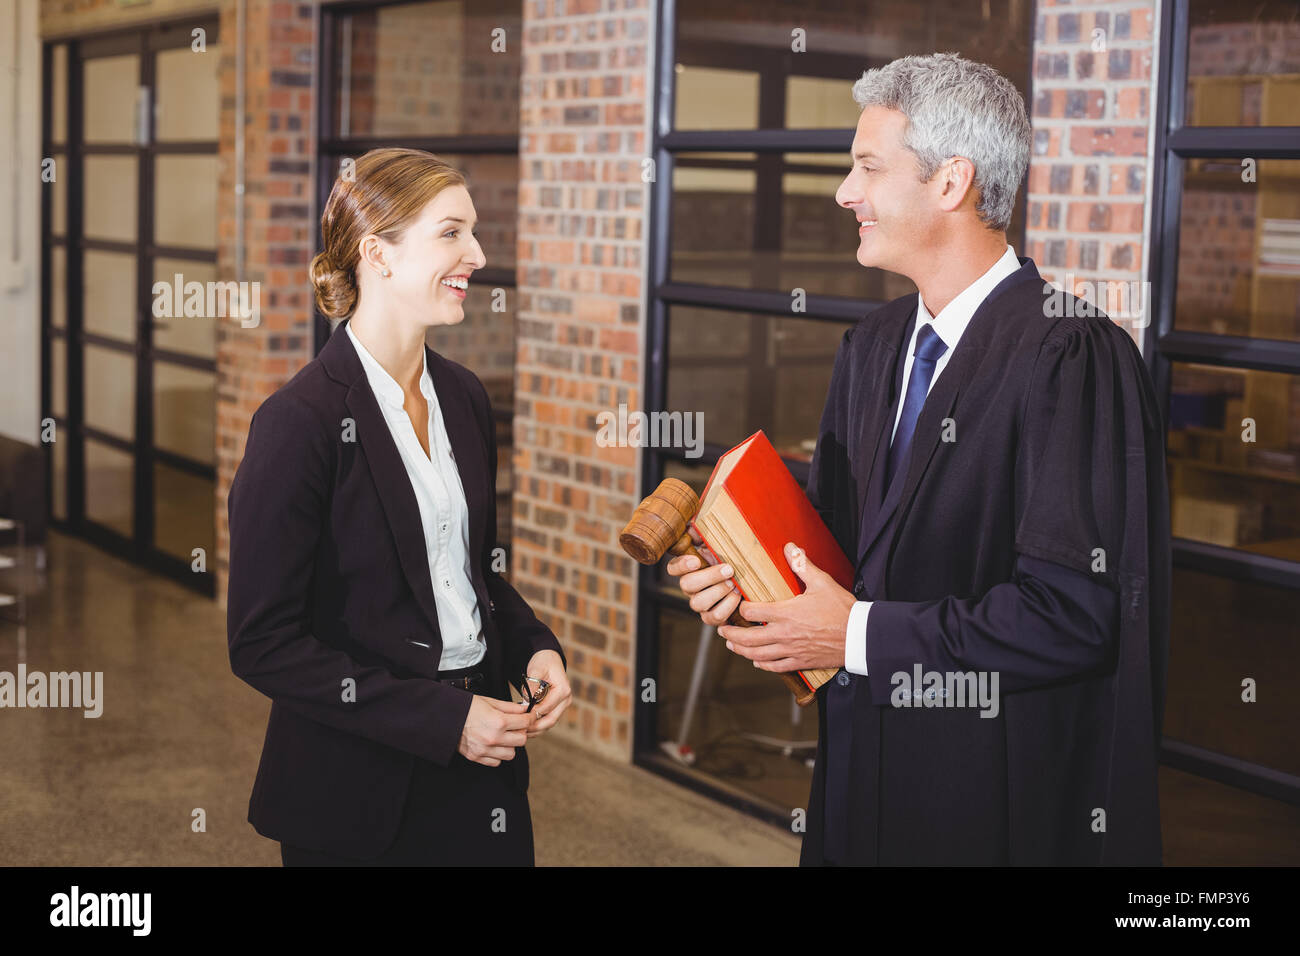 Male lawyer smiling while discussing with female colleague - Stock Image